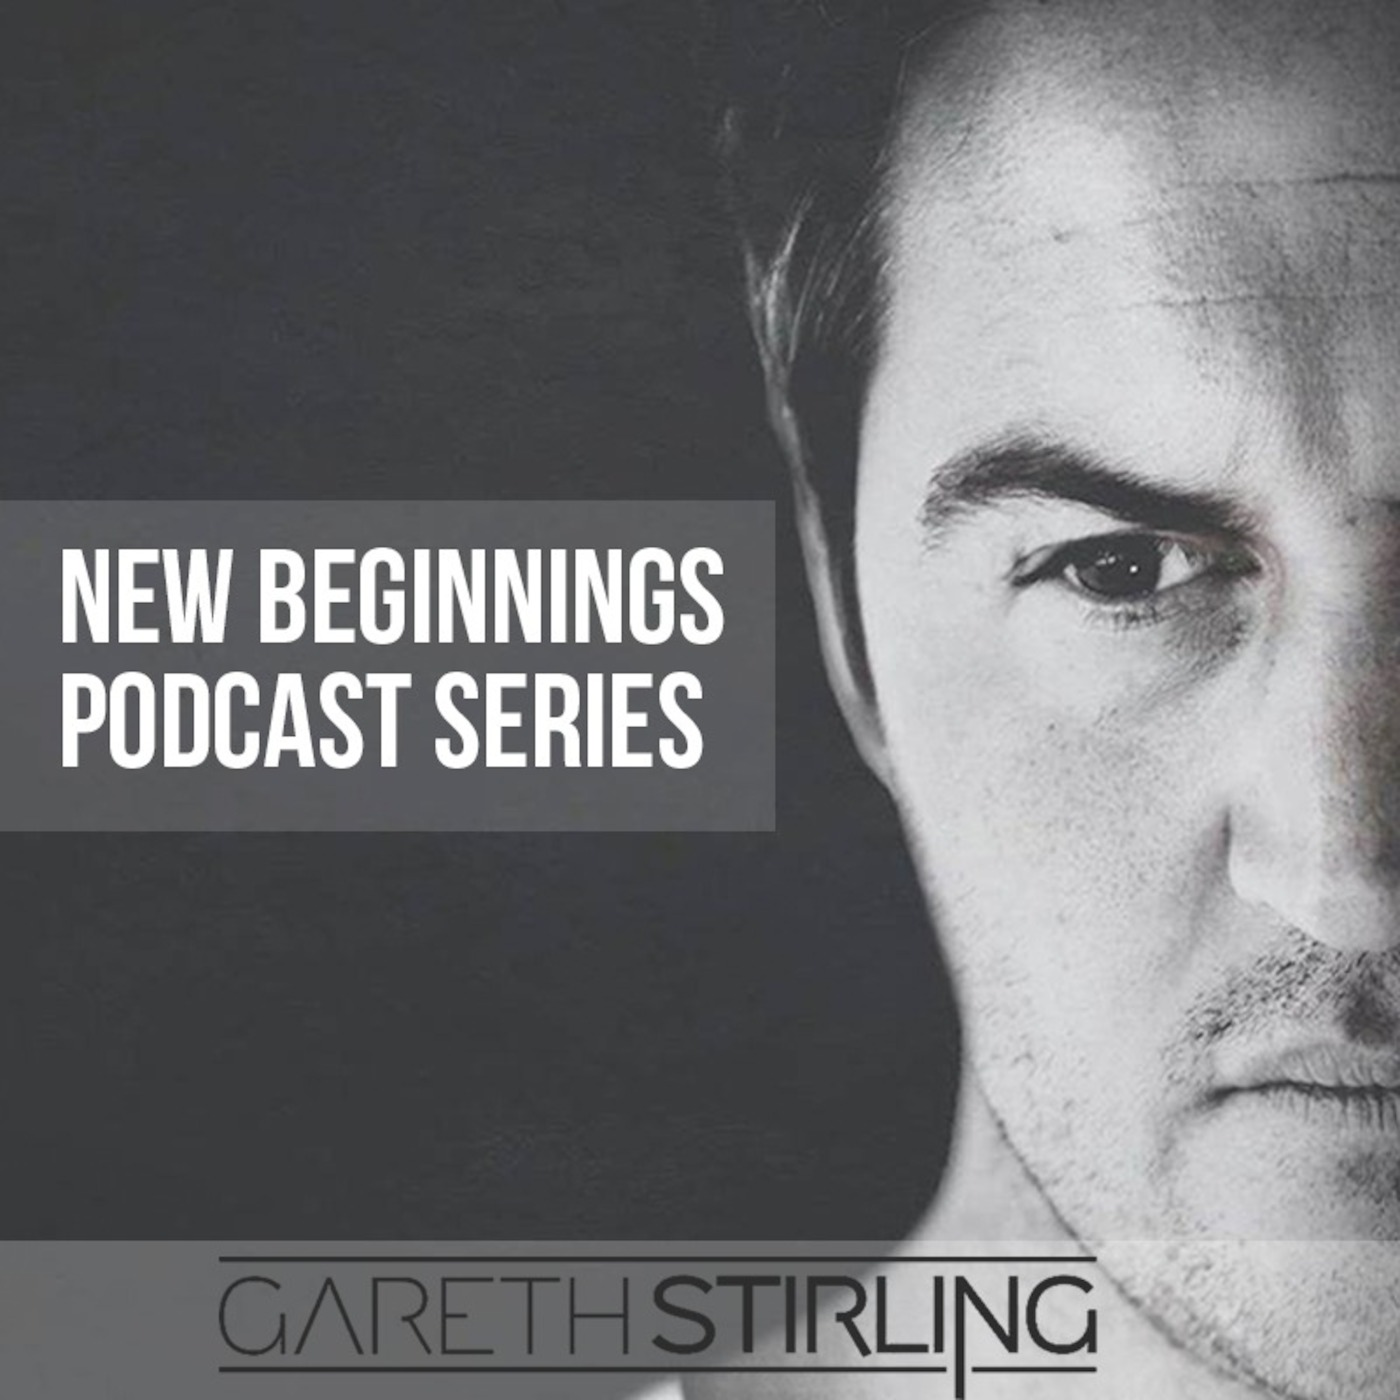 Gareth Stirling - New Beginnings Podcast